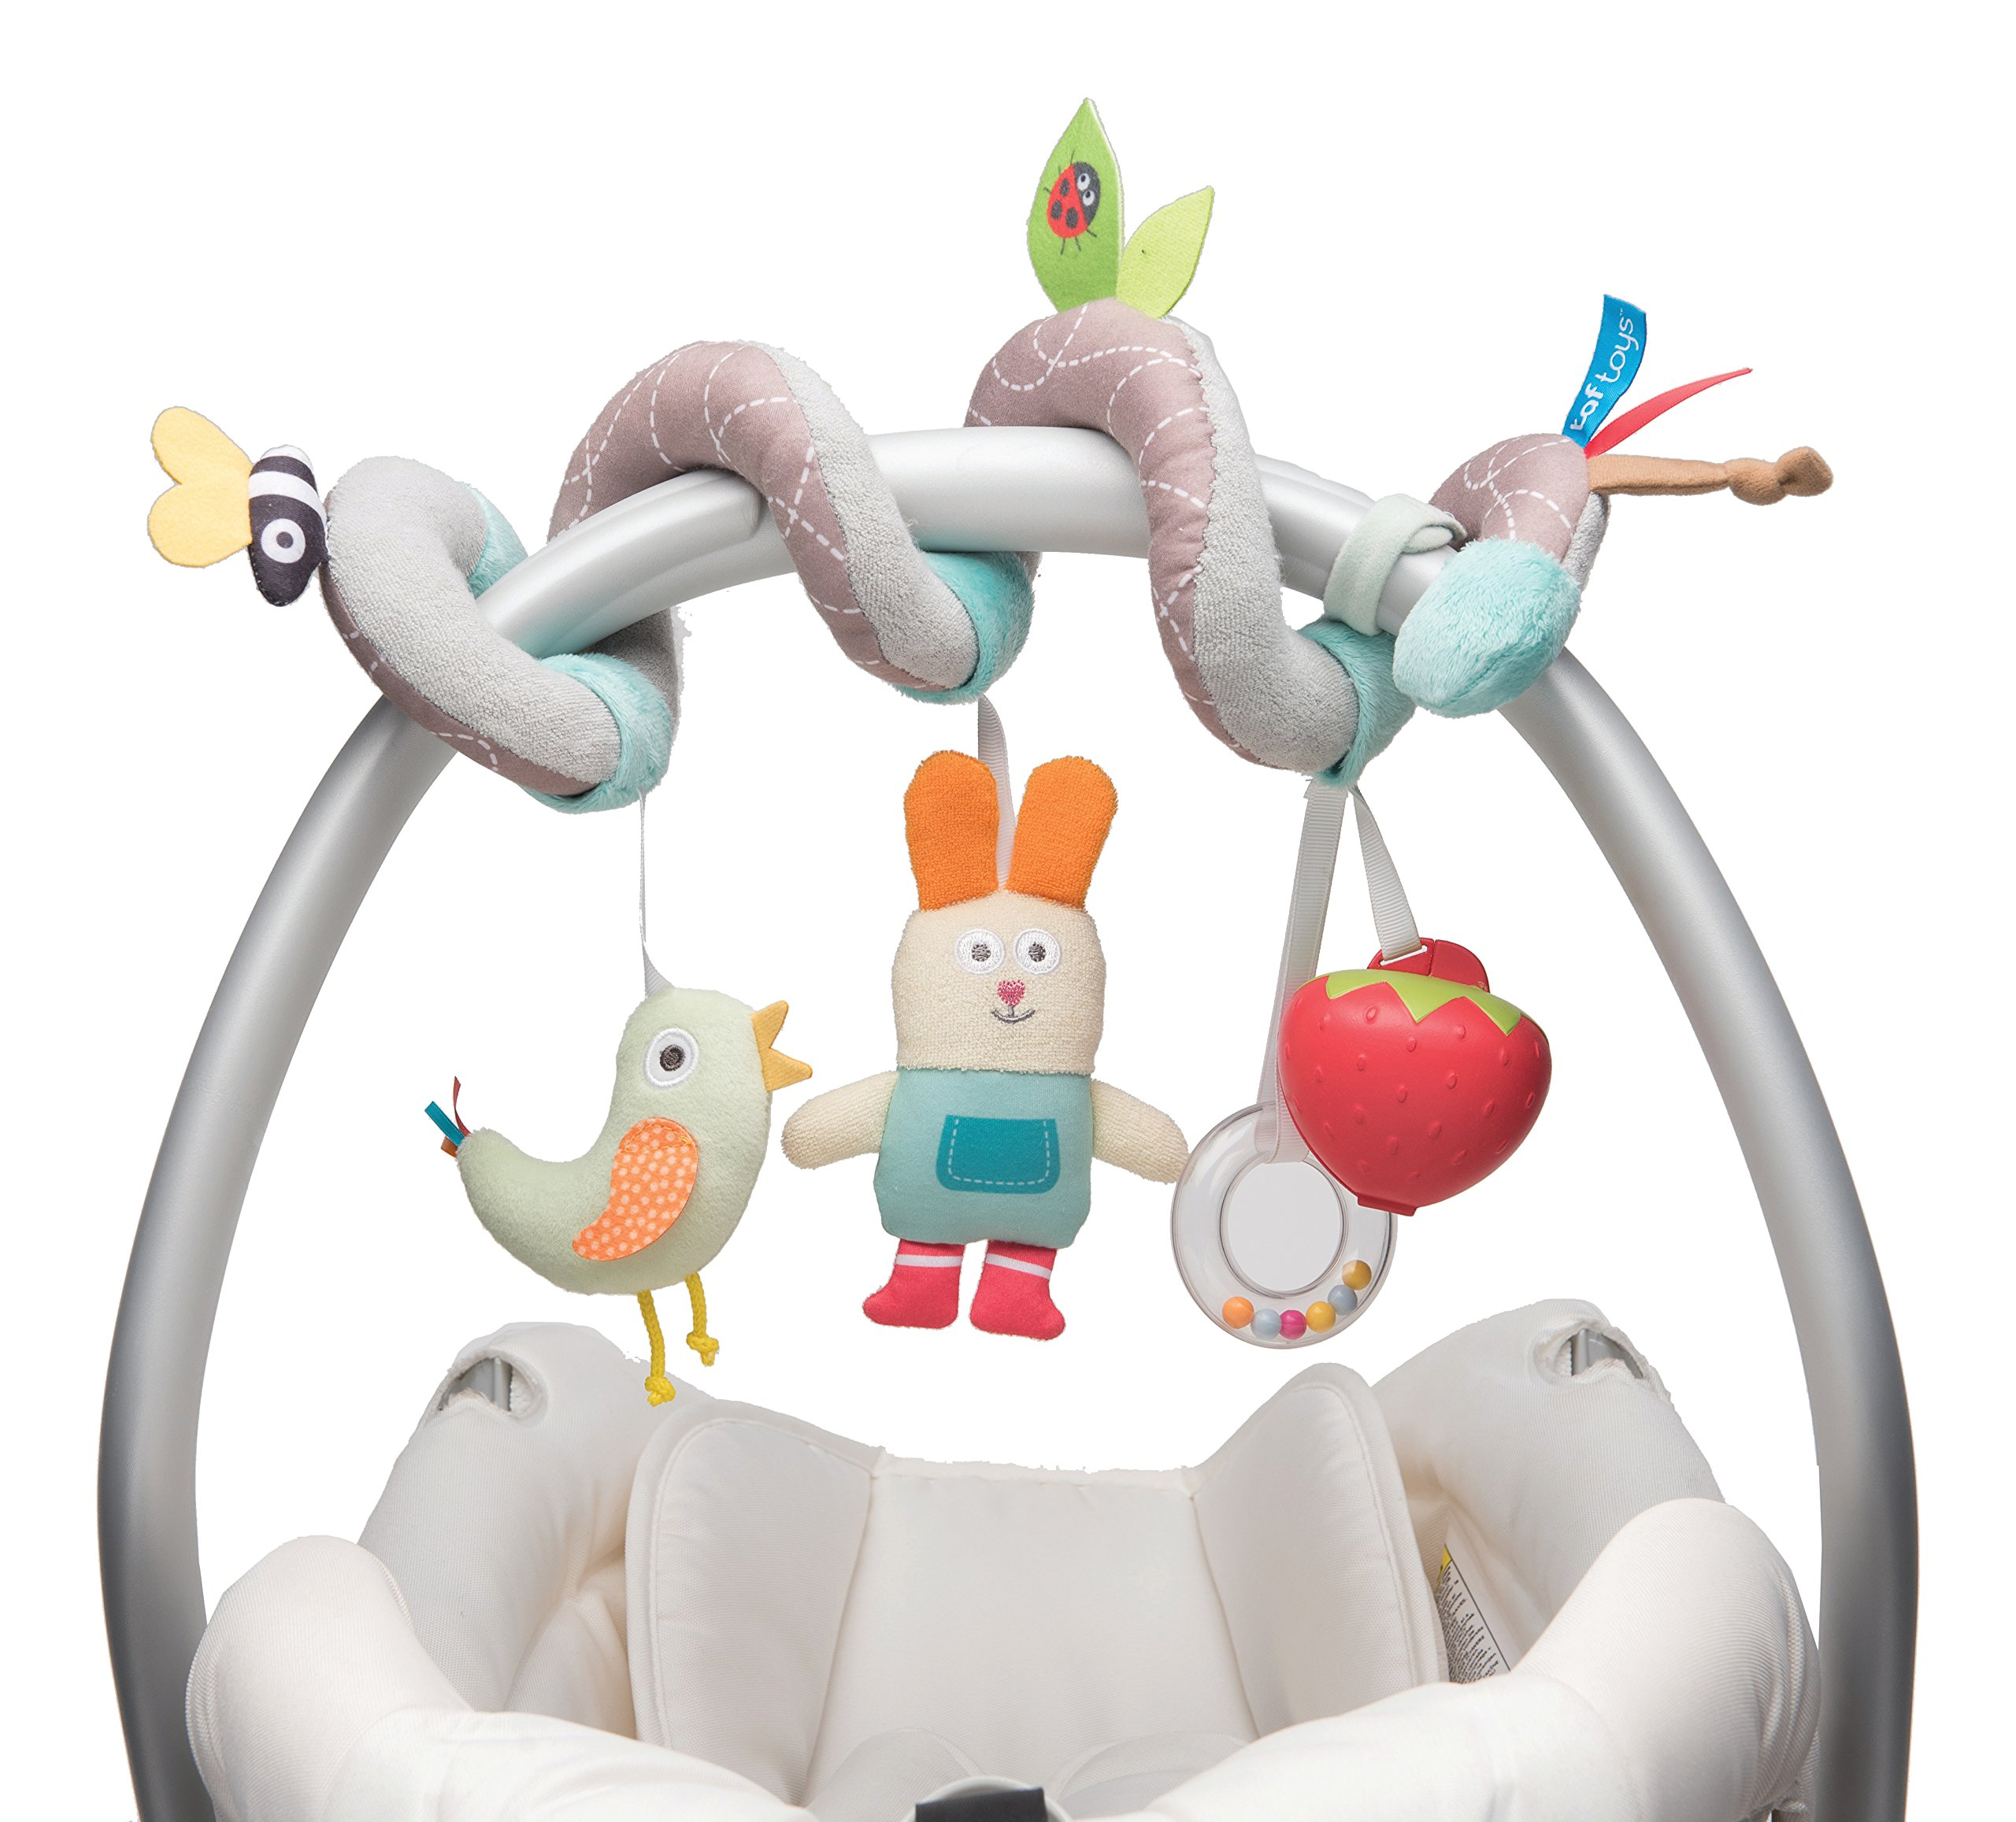 Taf Toys Garden Spiral | Baby's Fun Accessory For Car Seat & Pram Etc. , Hanging Rattling Toys, Easier Parenting, Keeps Your Baby Happy, Ideal Gift, Soother Strawberry Shape Case, For Easier Outdoors